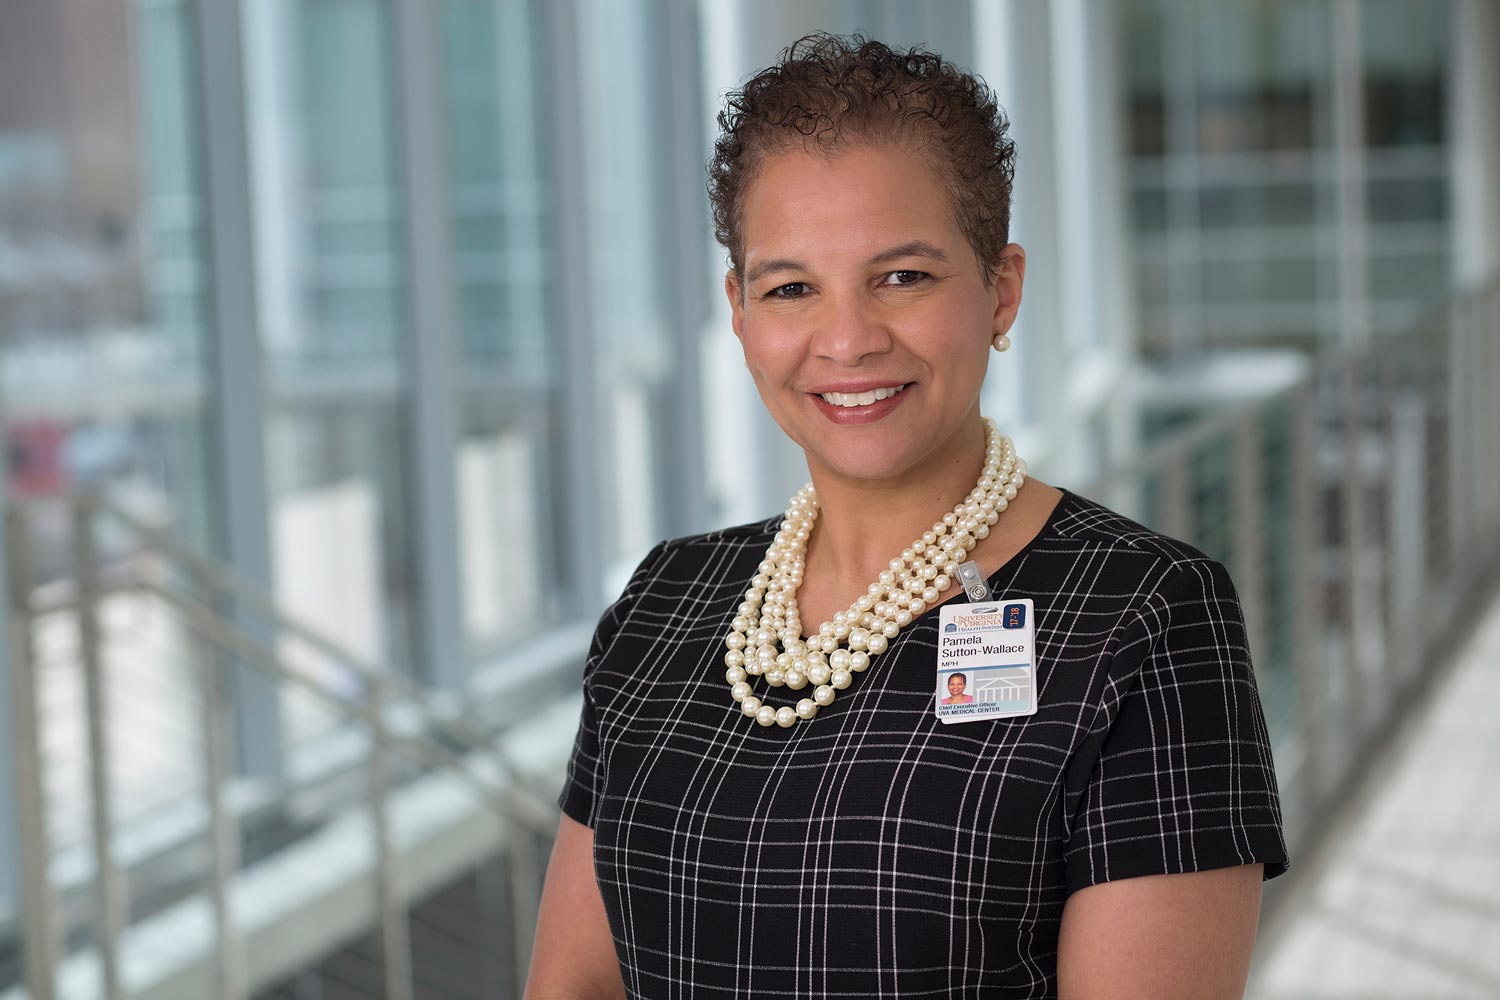 Pamela M. Sutton-Wallace, CEO of the UVA Medical Center, began serving as acting executive vice president for health affairs on May 1.